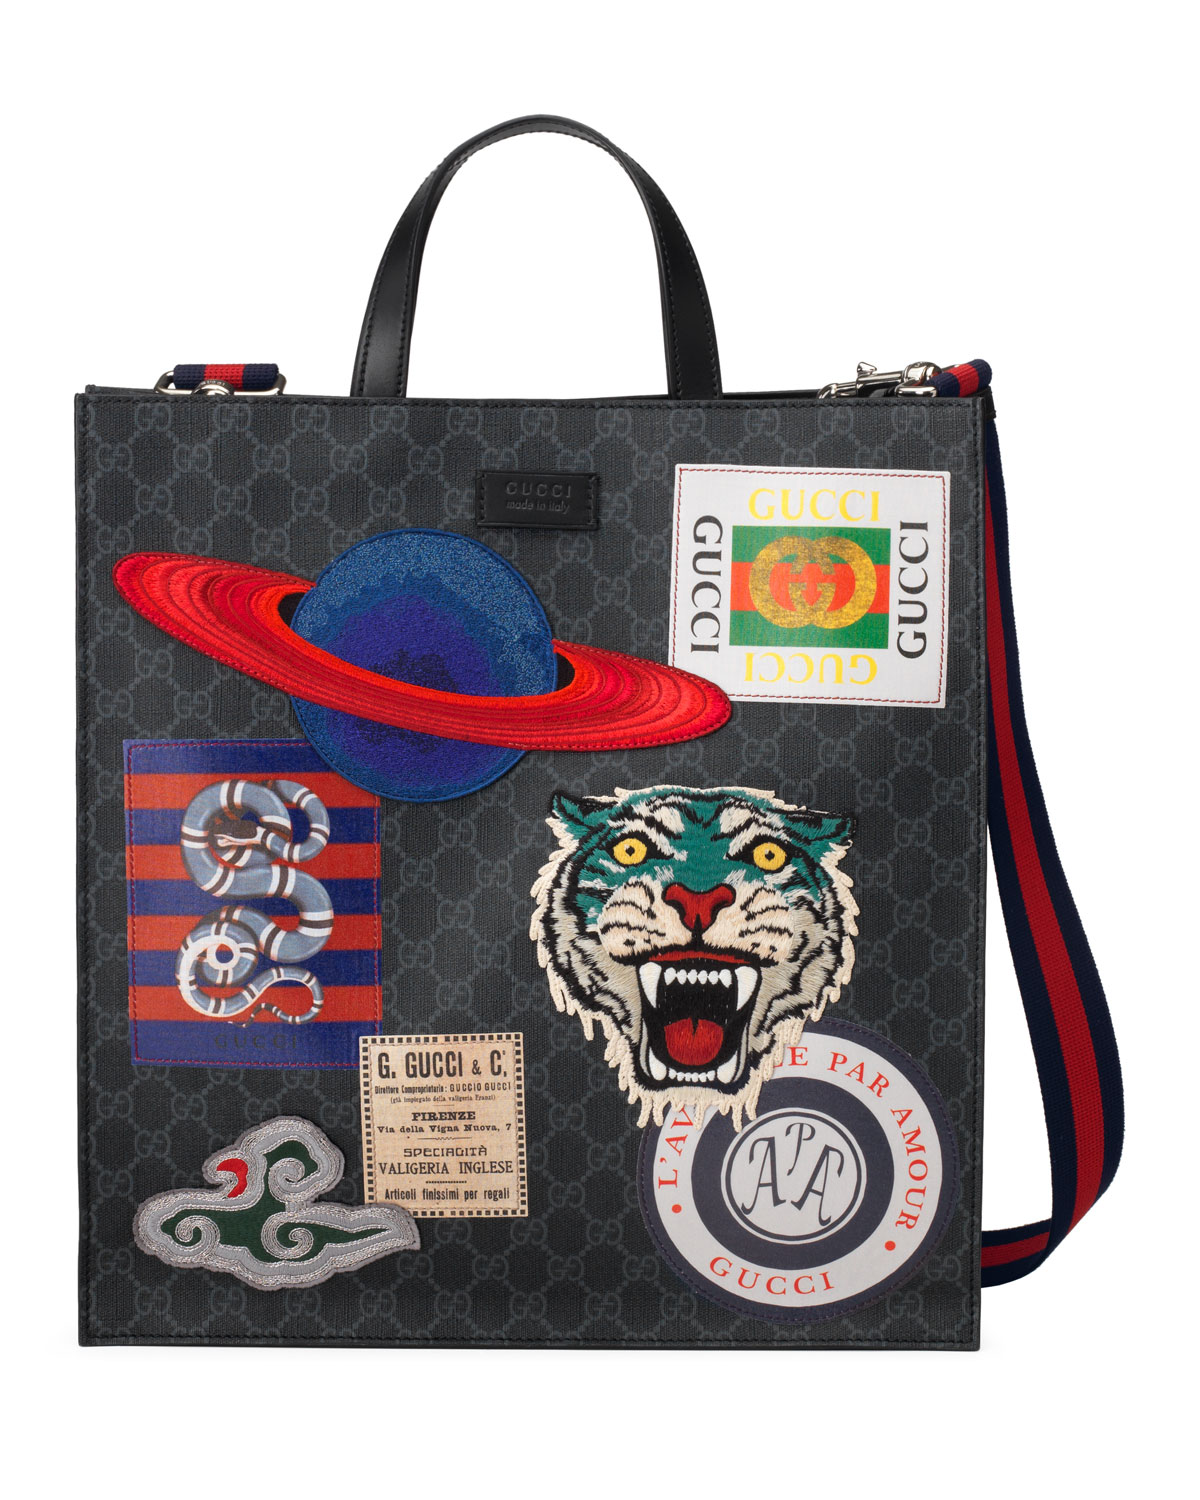 c87ce9e393e1 Gucci Men's GG Supreme Tote Bag with Patches | Neiman Marcus